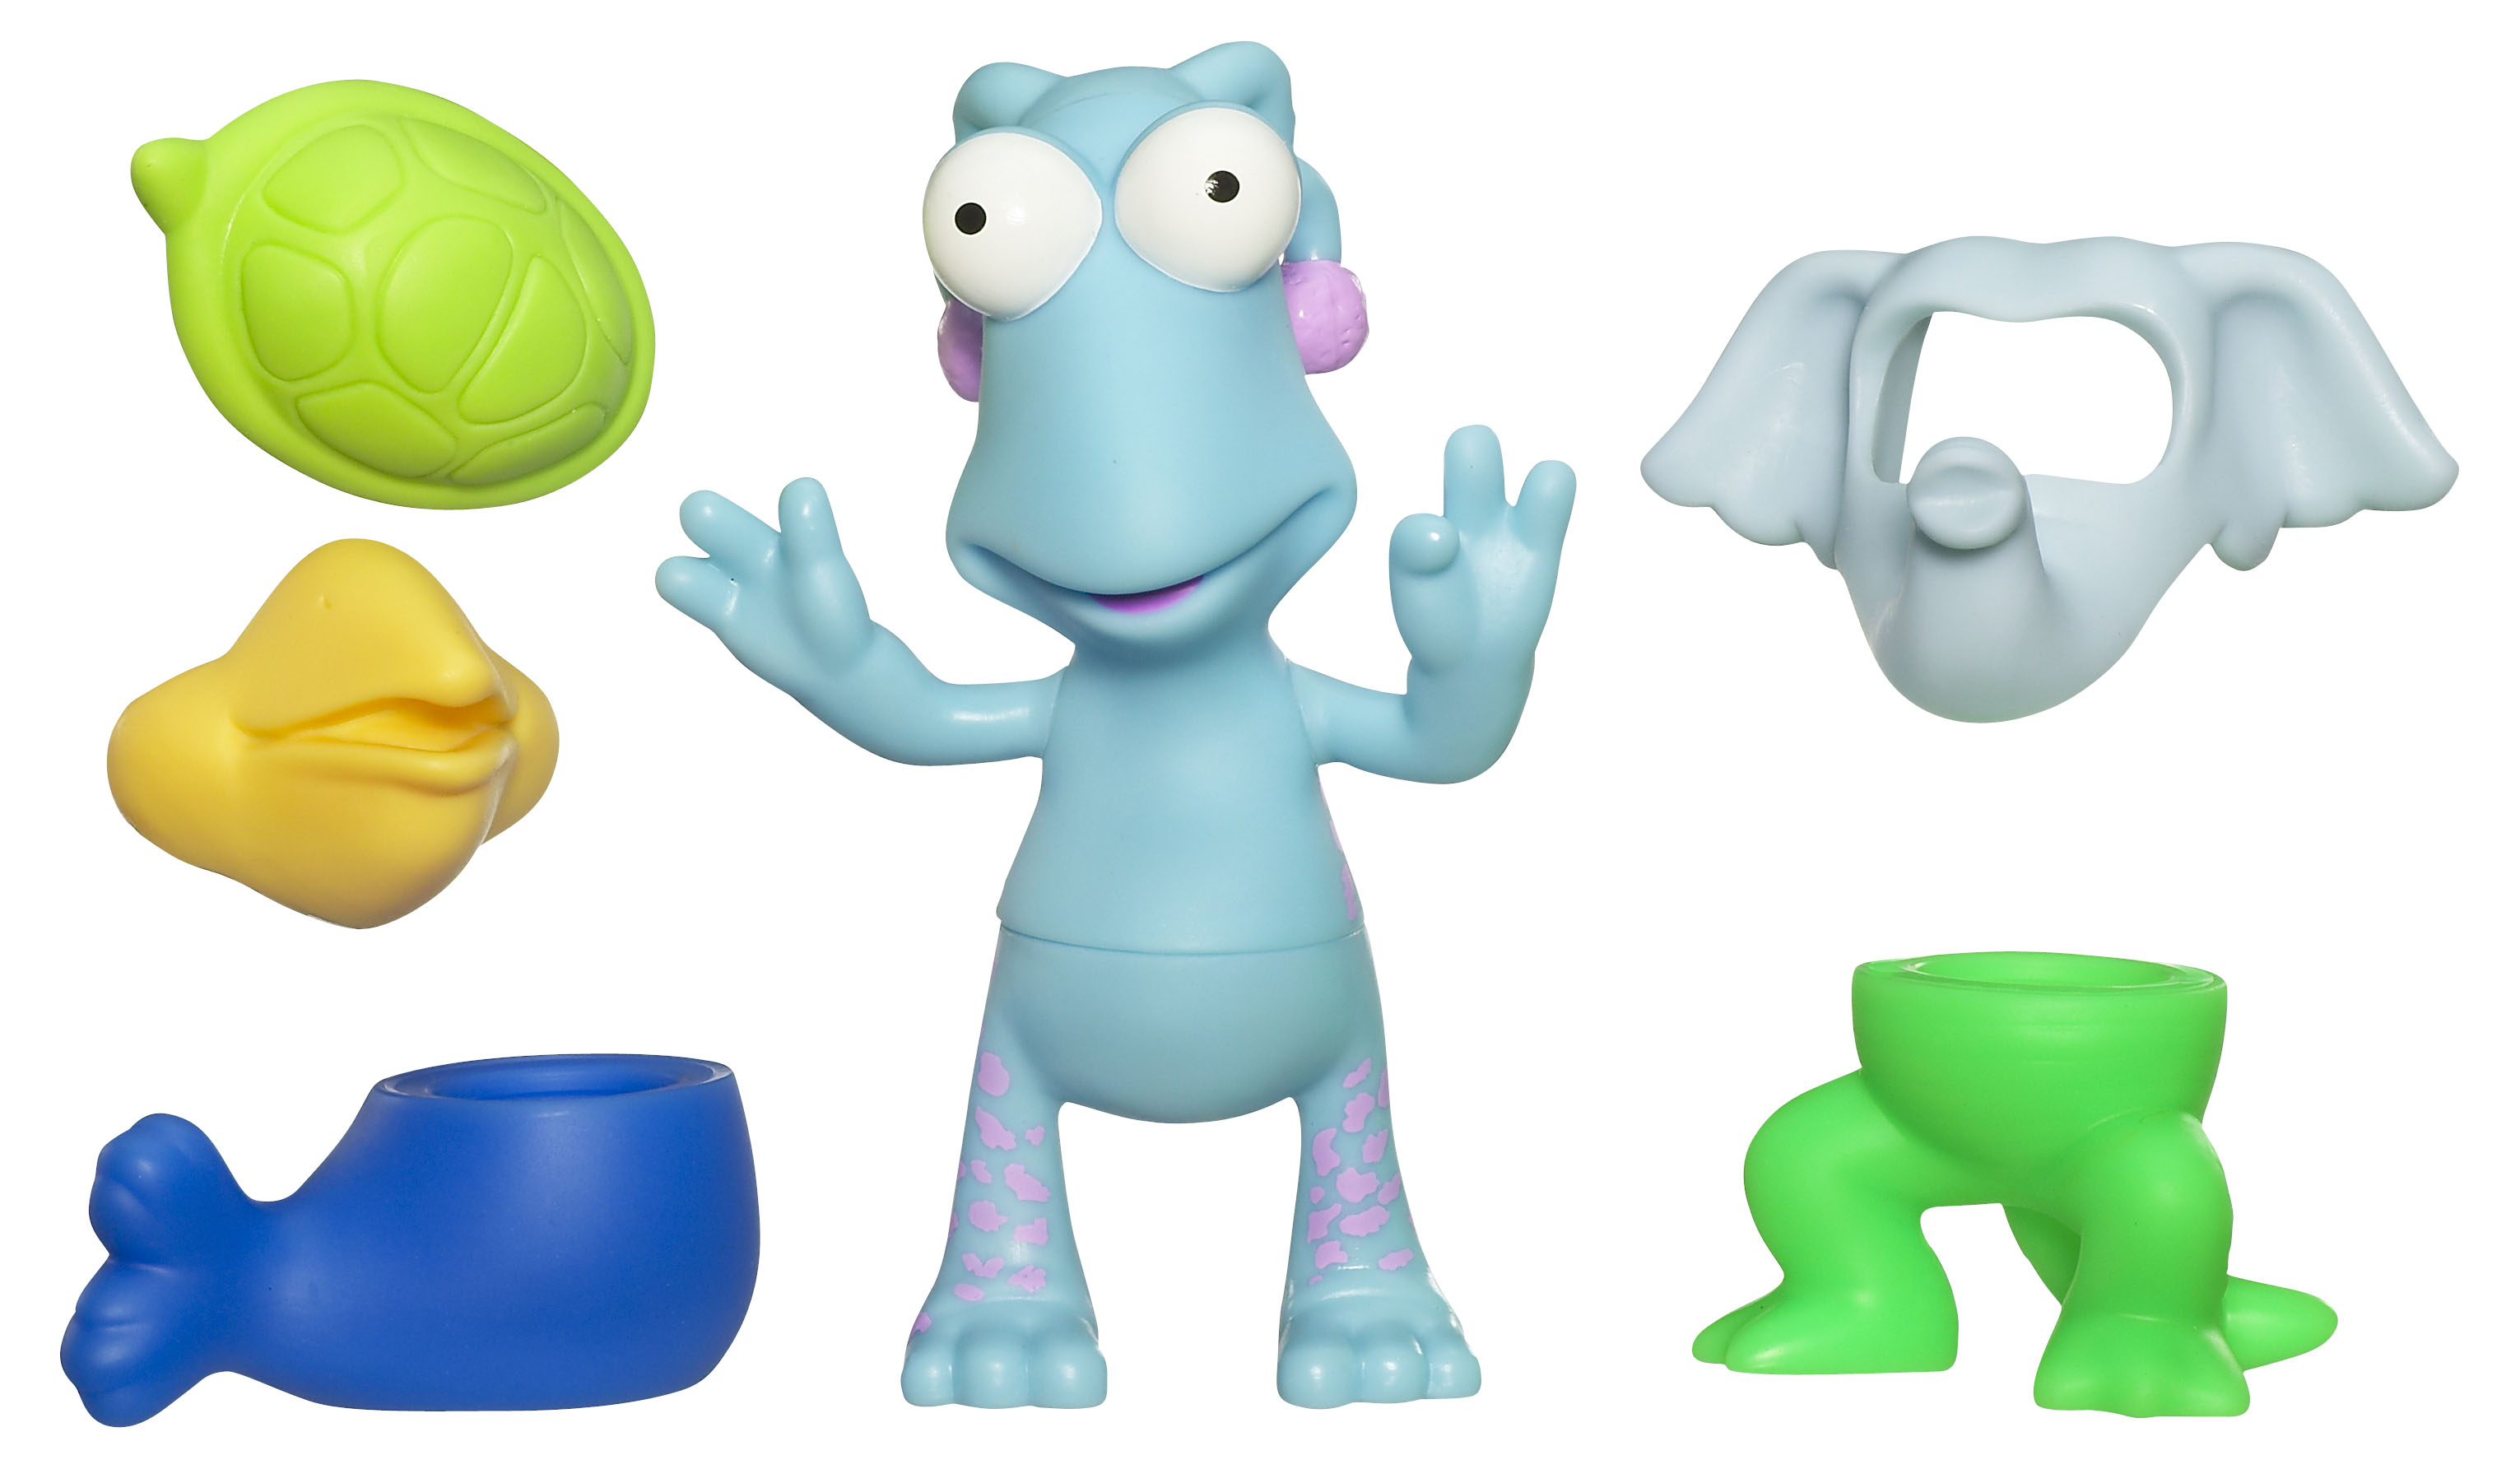 Toys From Hasbro : Wotwots toys from hasbro